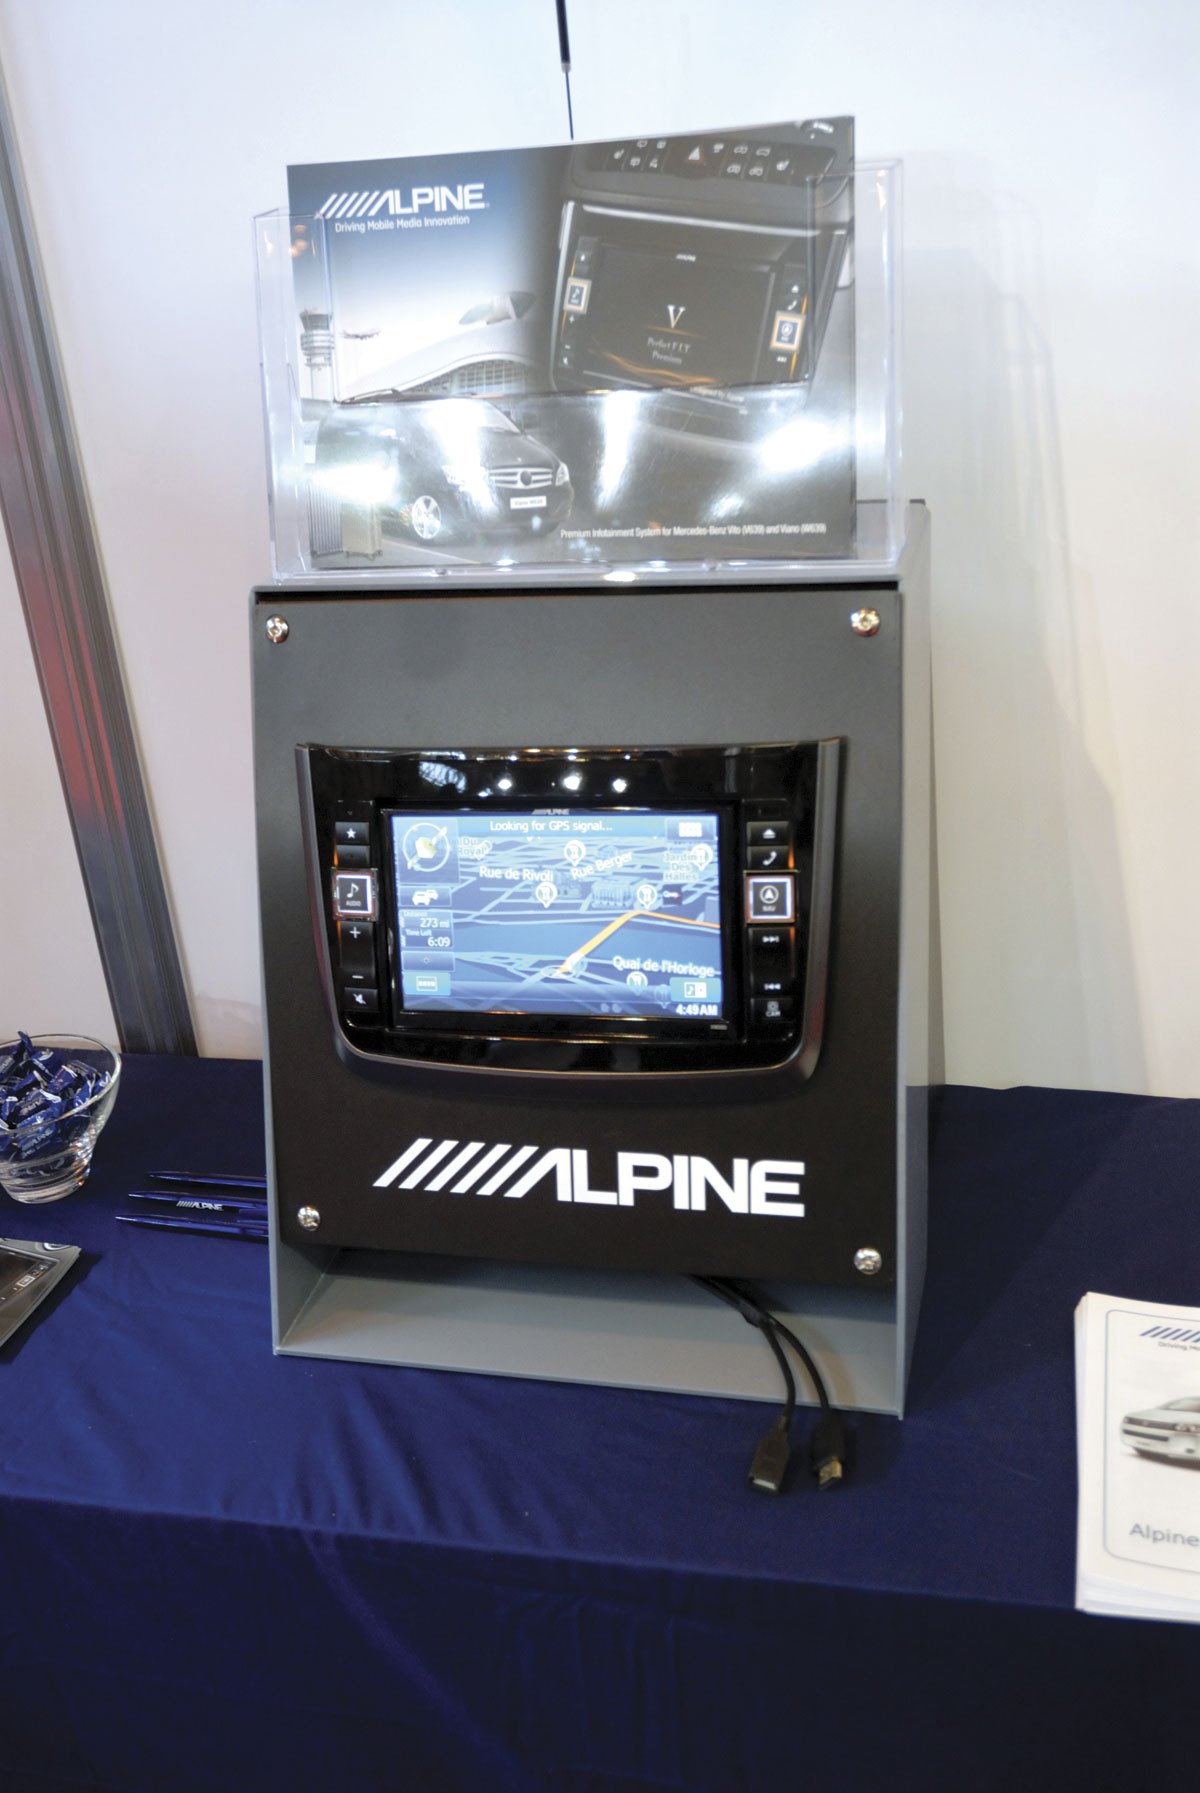 Alpine was showing a dashboard mounted media unit ideal for use on Mercedes-Benzs